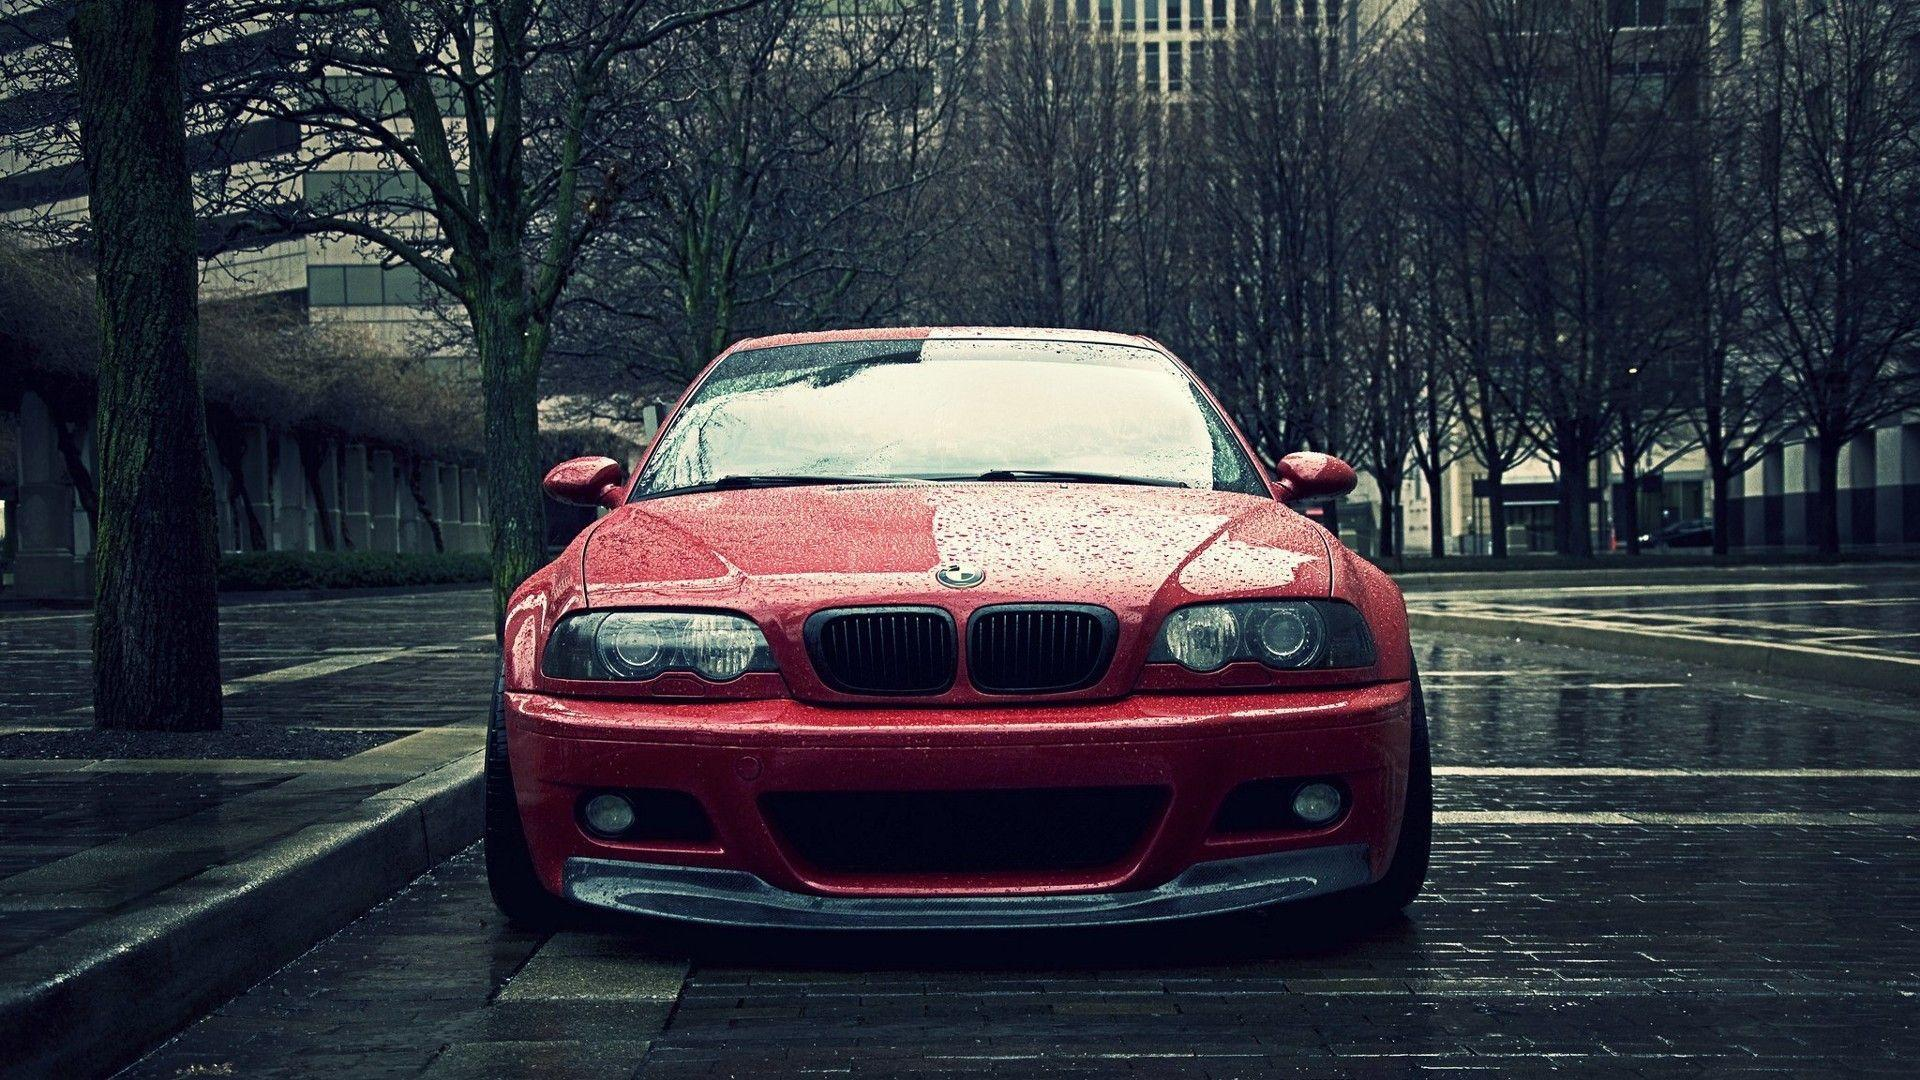 BMW M3 E46 Wallpapers - Wallpaper Cave